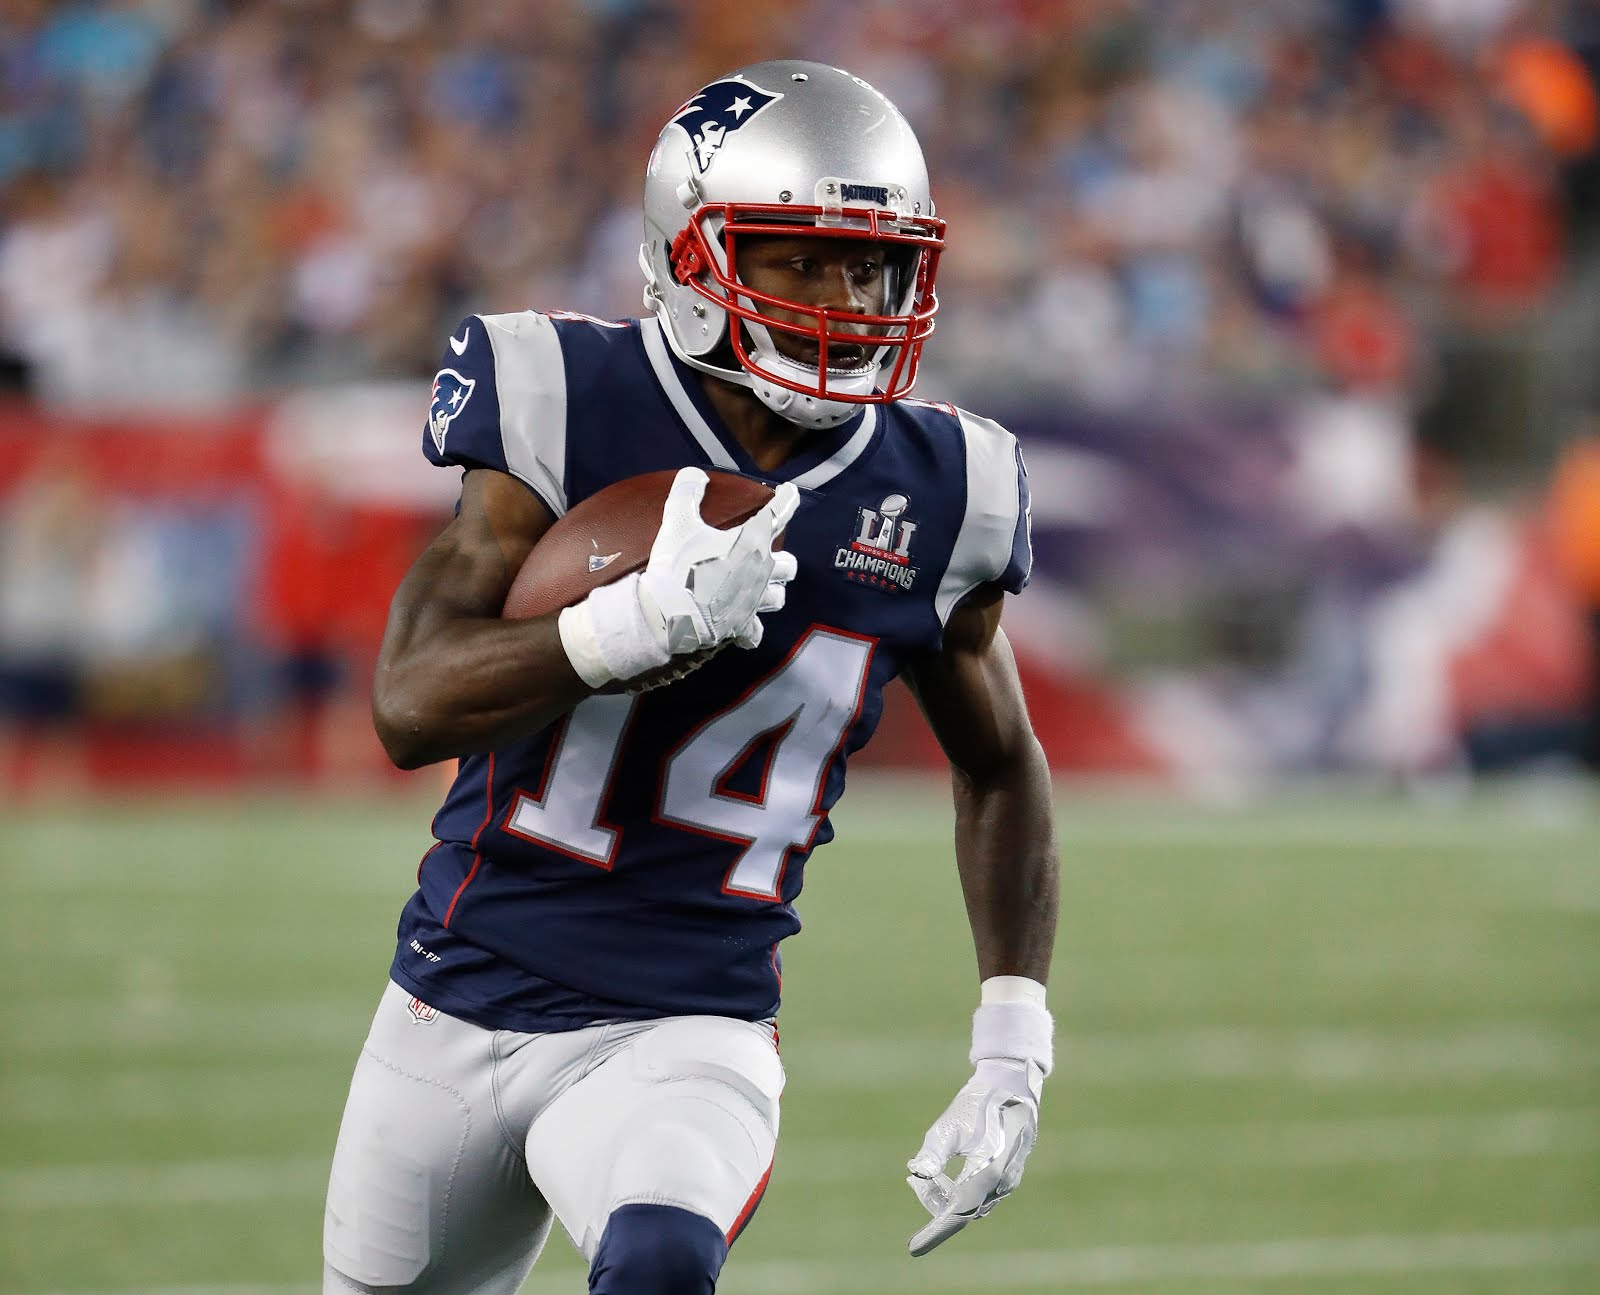 595bc5af Brandin Cooks' speed, excellent route running and catching ability ...